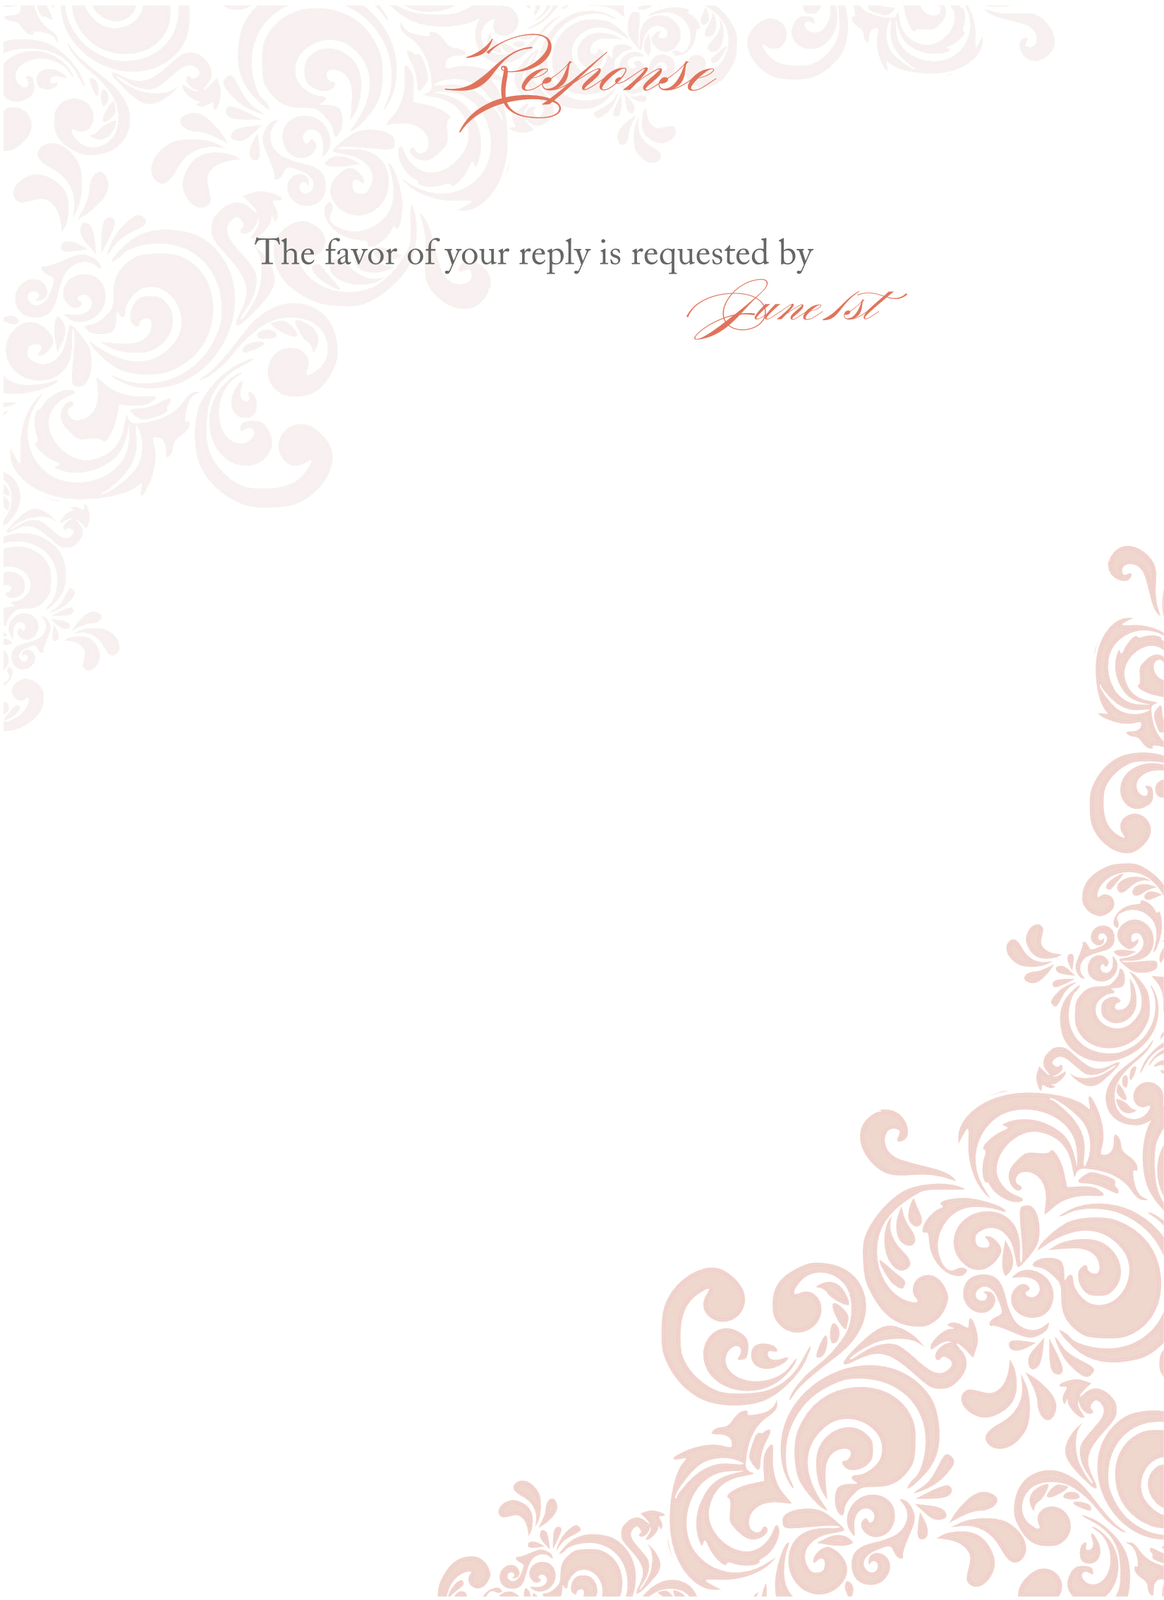 blank wedding invitation templates floral curves ideas